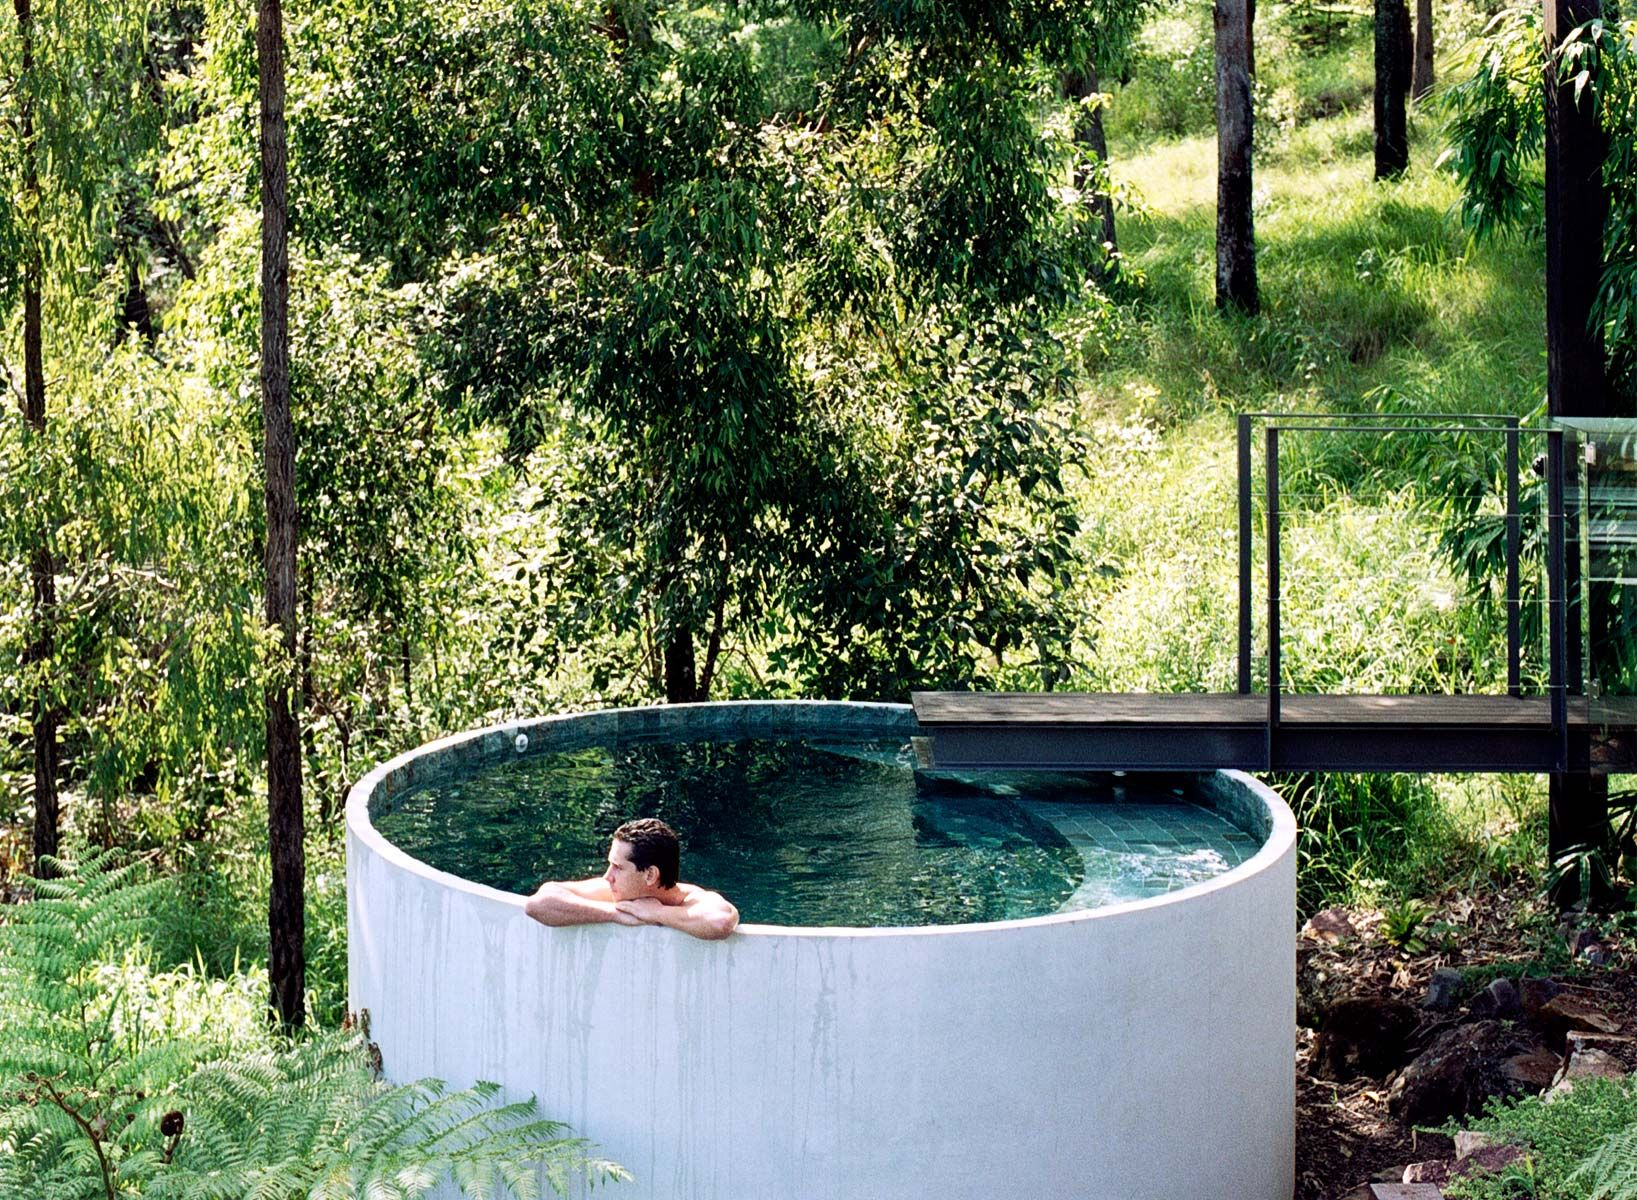 Concrete Pipe As Pool How Cool Is That Imagine A Series